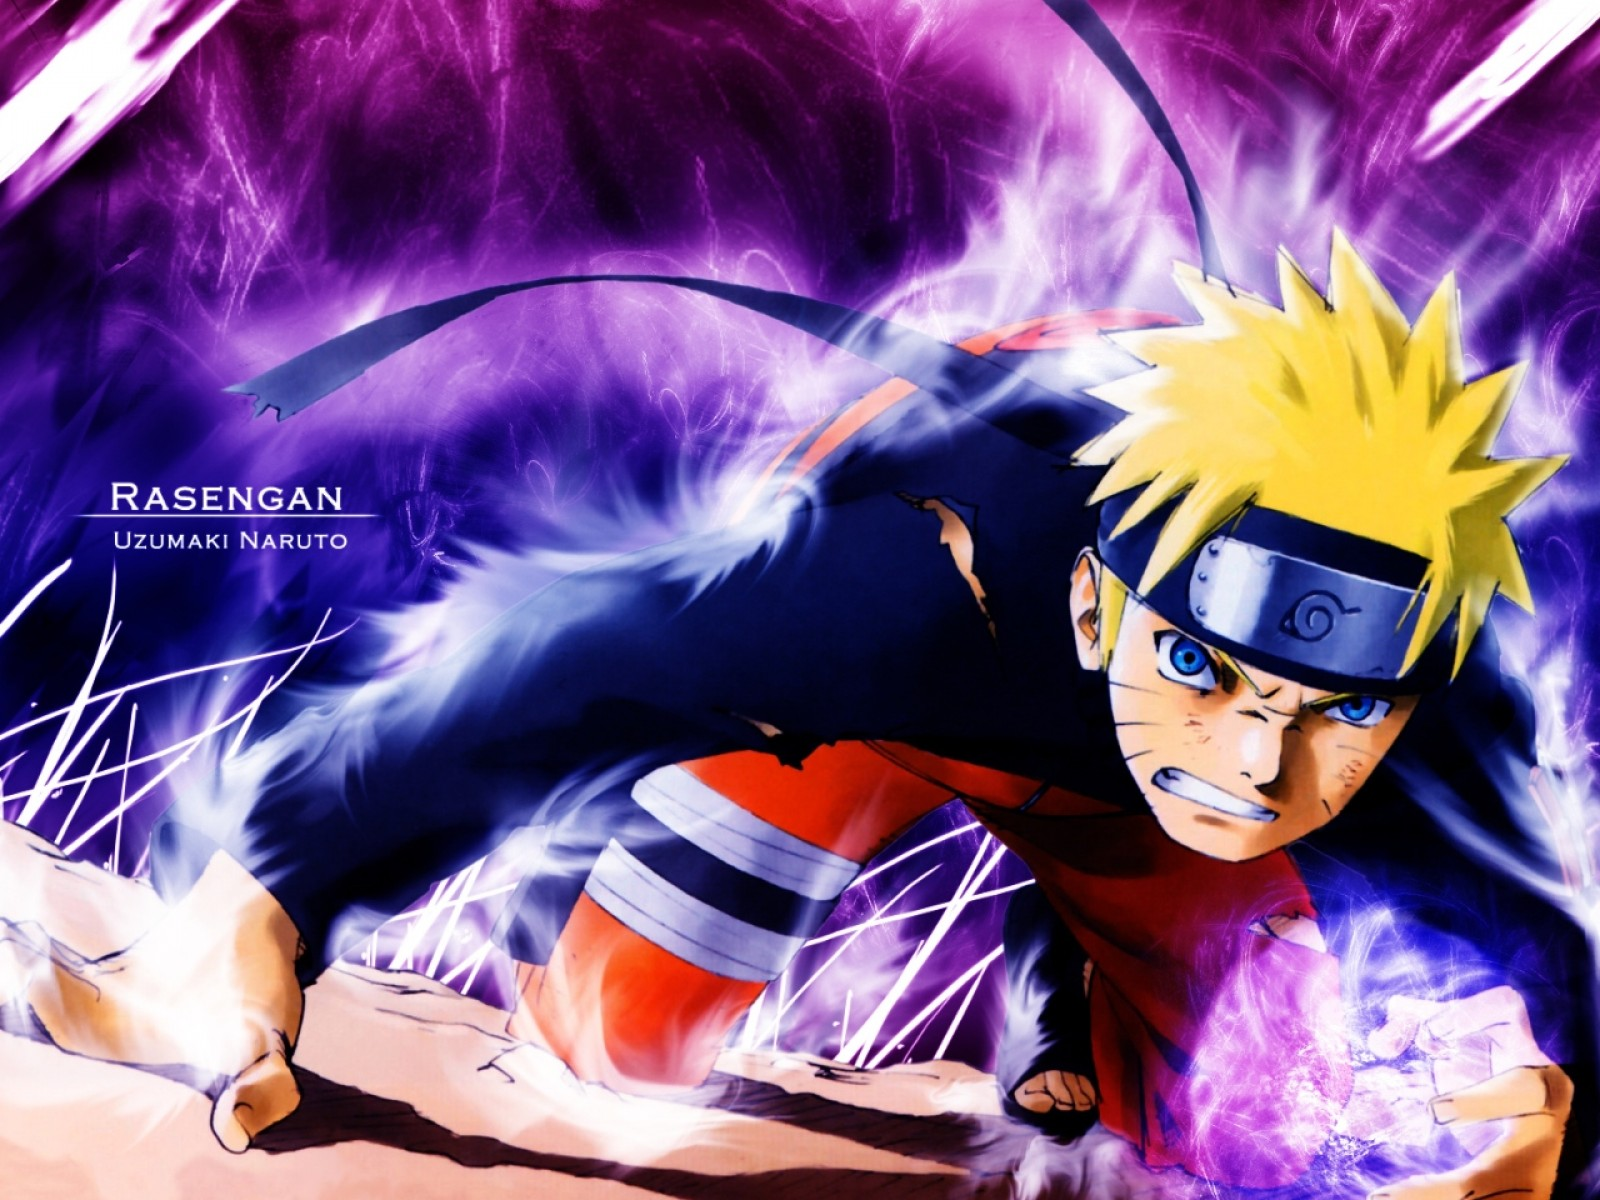 naruto shippuden wallpaper naruto shippuden wallpapers hd 1jpg 1600x1200